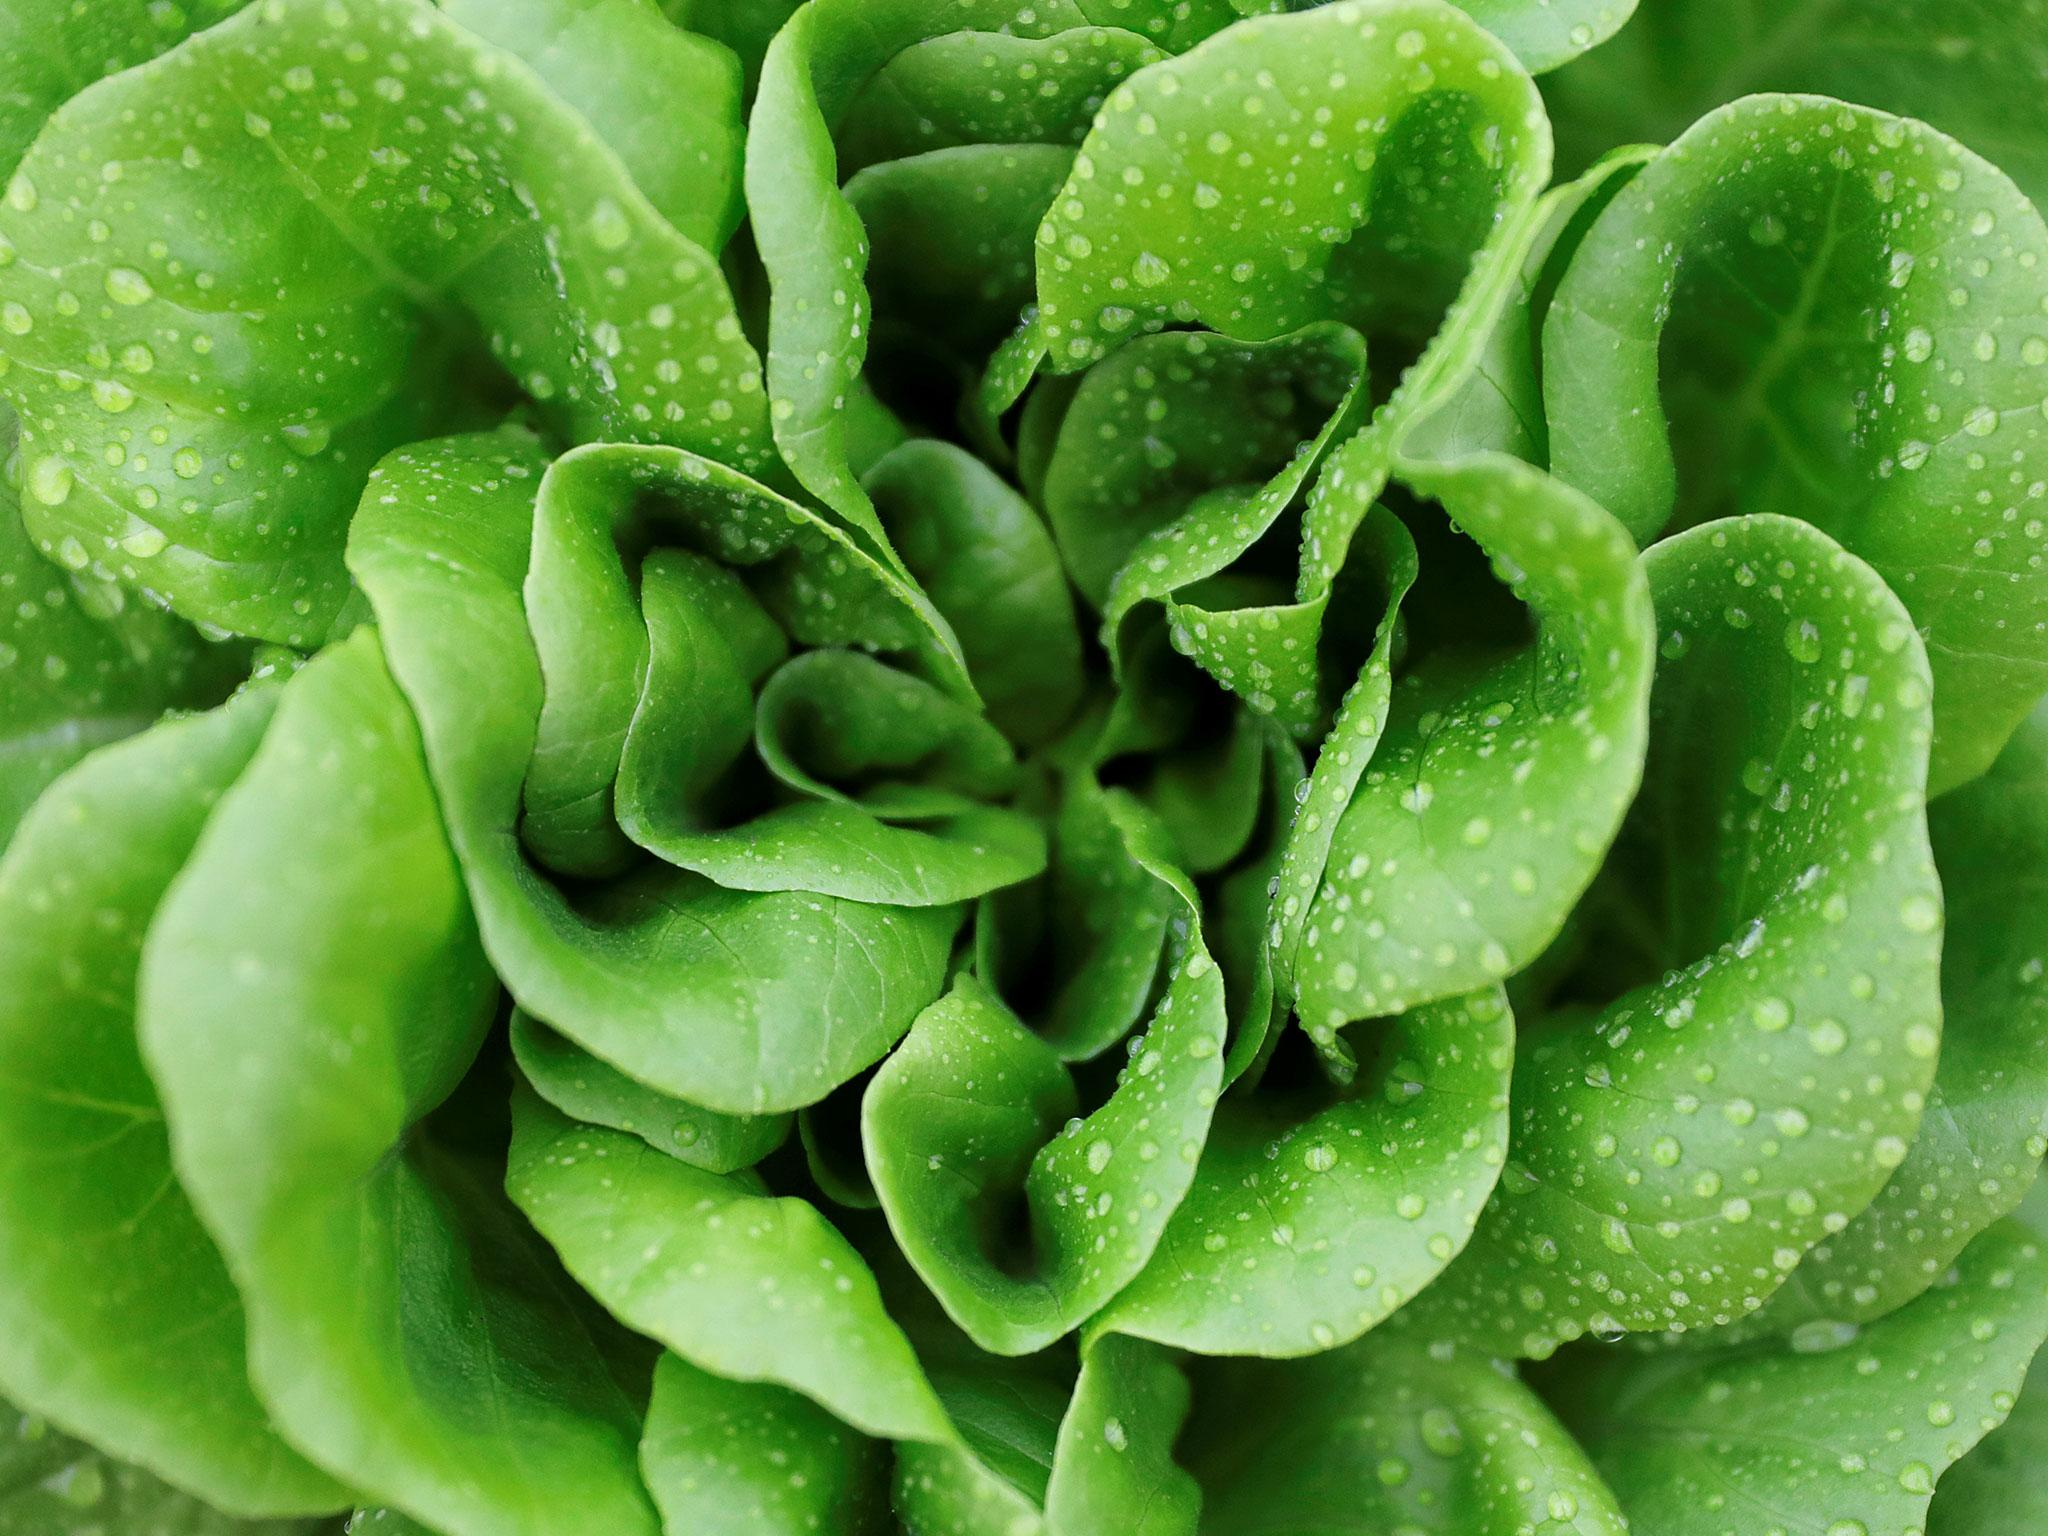 Lettuce shortage: Vegetable rationing spurs rise in sale of seeds as British people turn to grow own greens